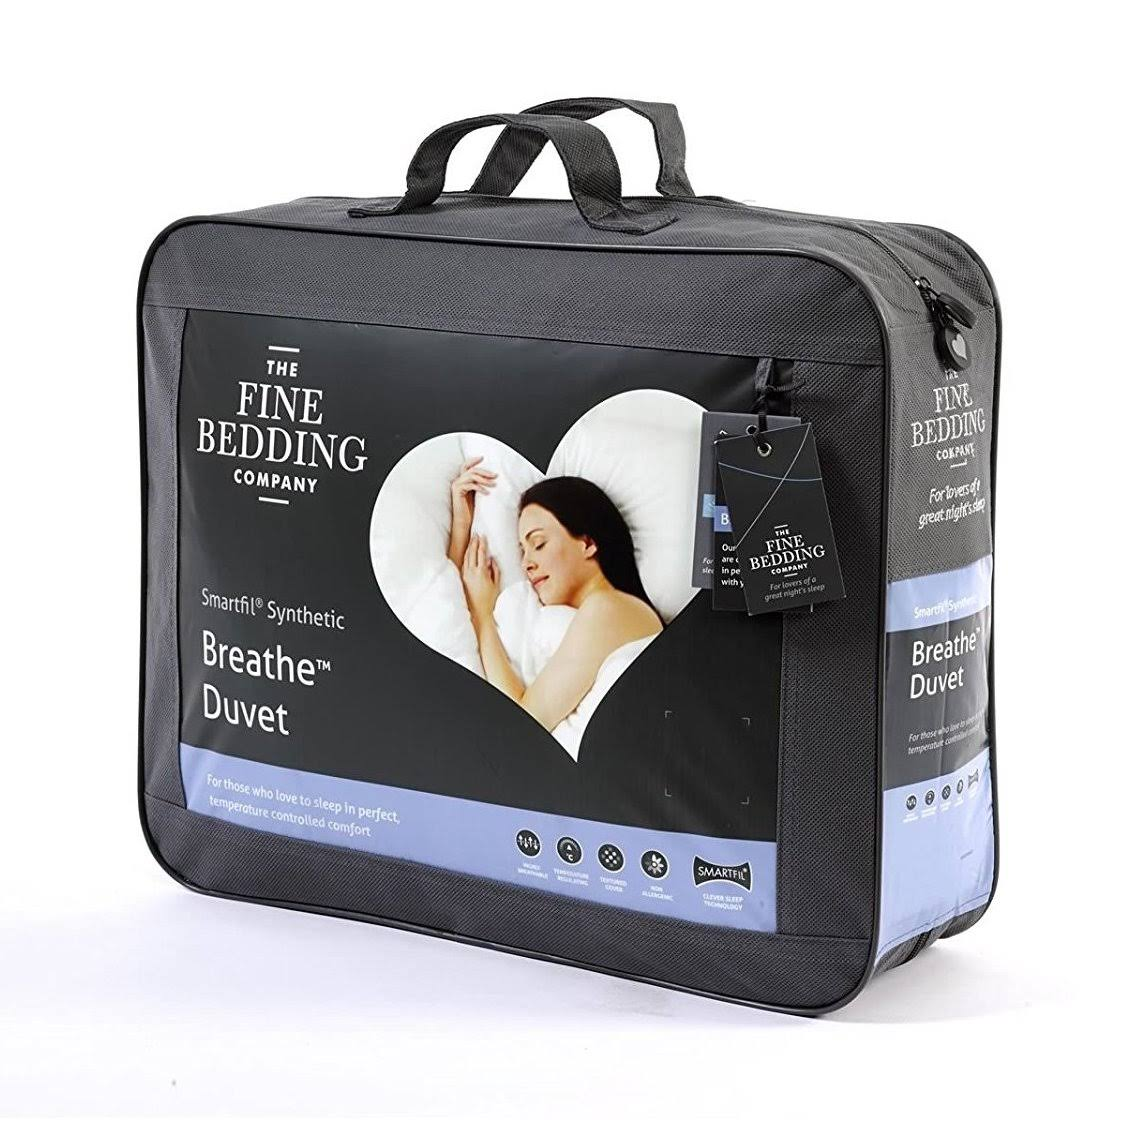 The Fine Bedding Company Breathe Duvet - 10.5 Tog Double